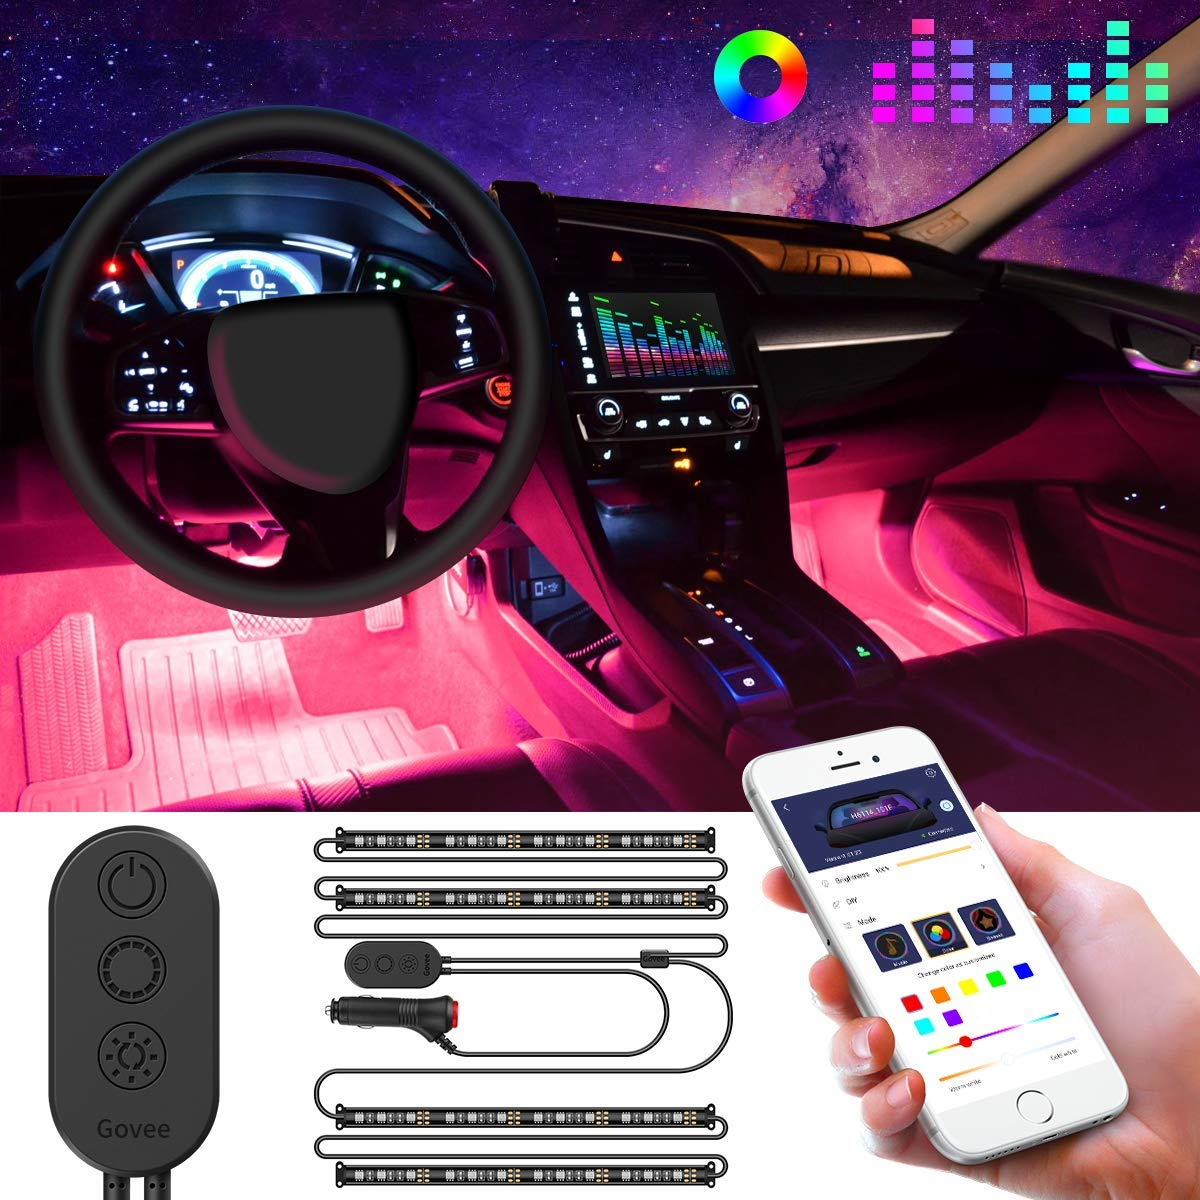 Car Interior Lights, Govee Car LED Strip Light Upgraded Two-Line Design Waterproof 4pcs 48 LED APP Controlled Lighting Kits